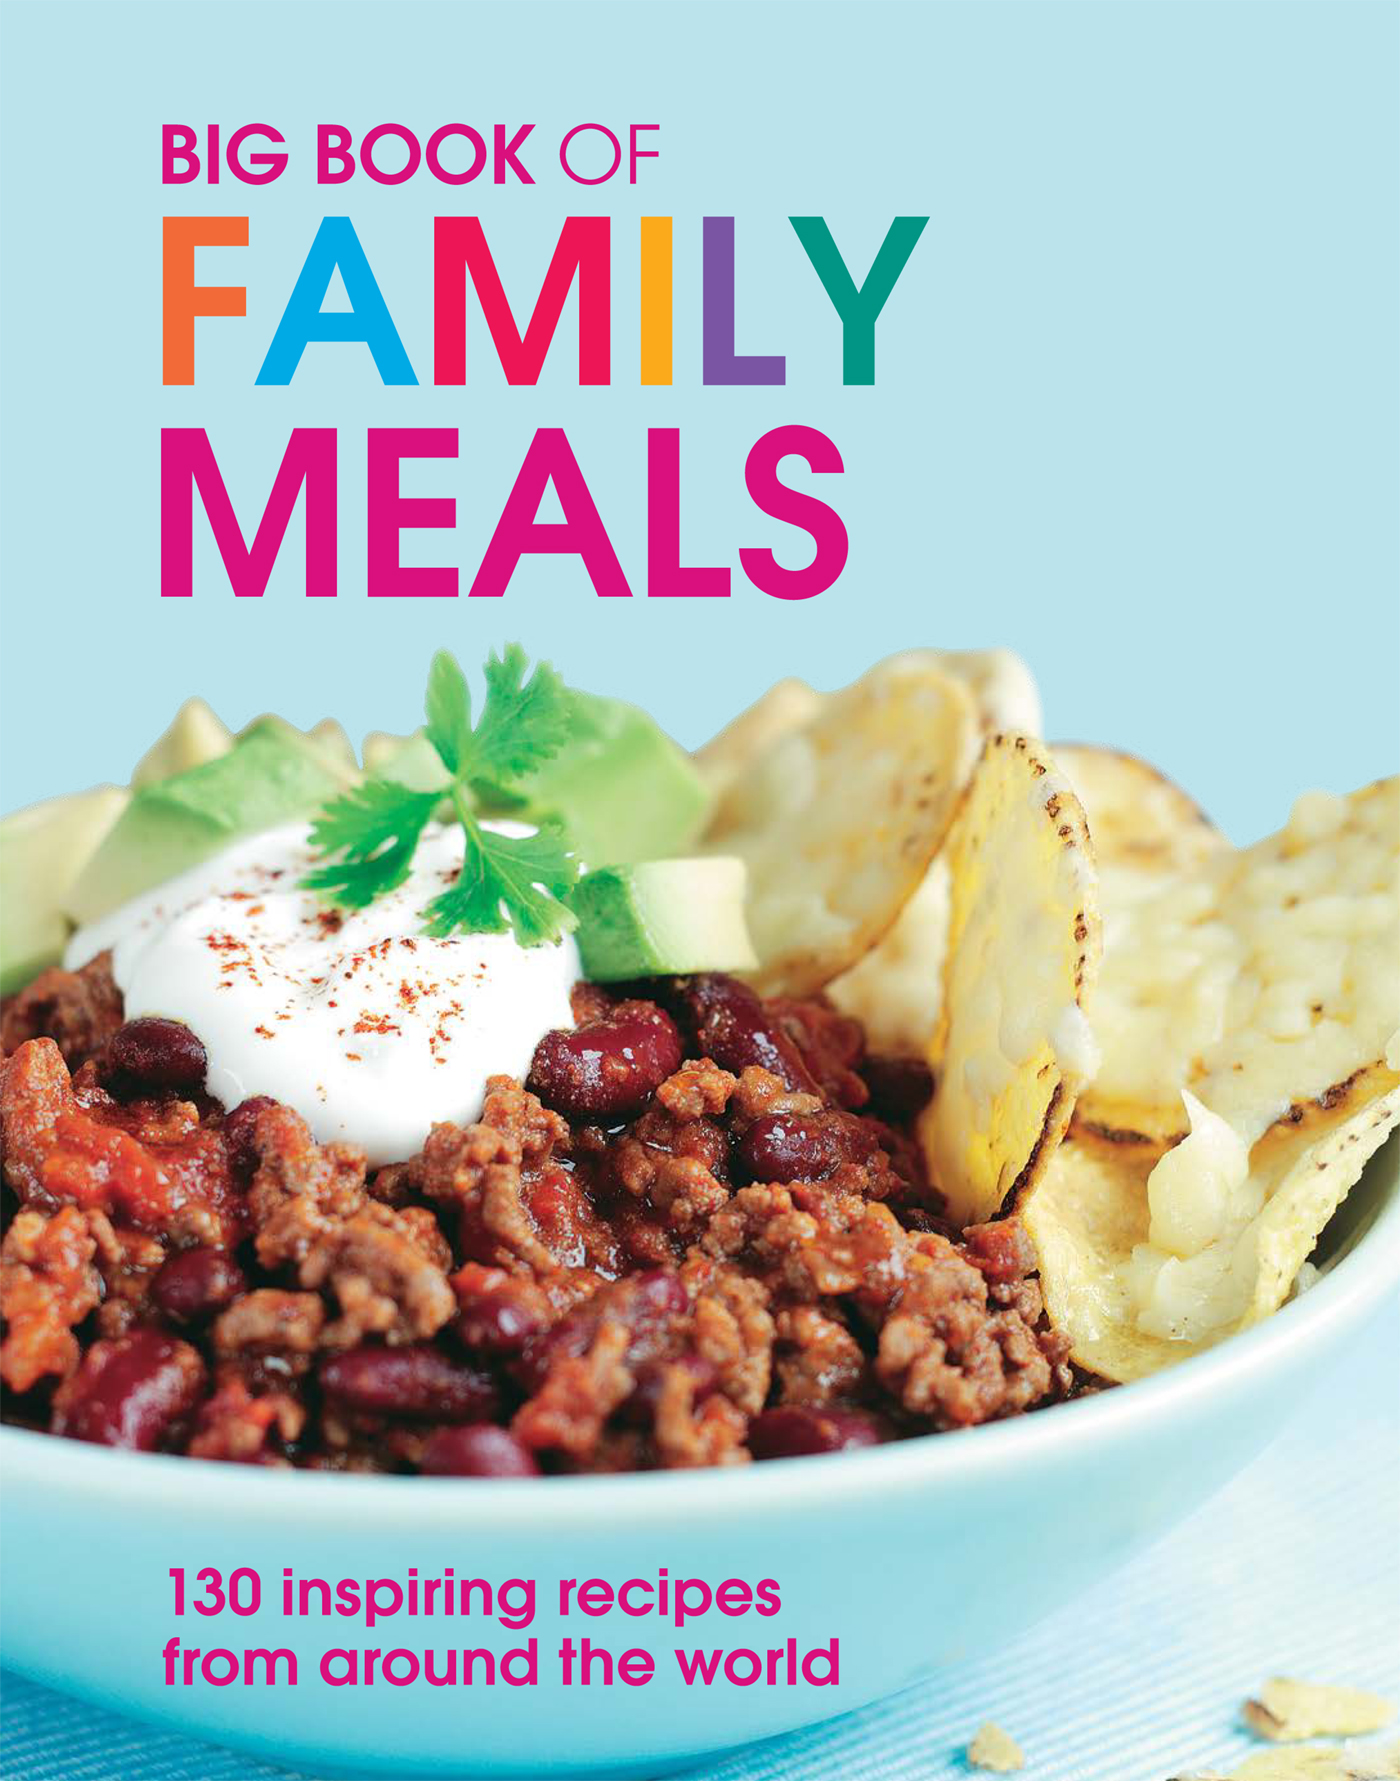 Big Book of Family Meals 130 Inspiring Recipes from Around the World